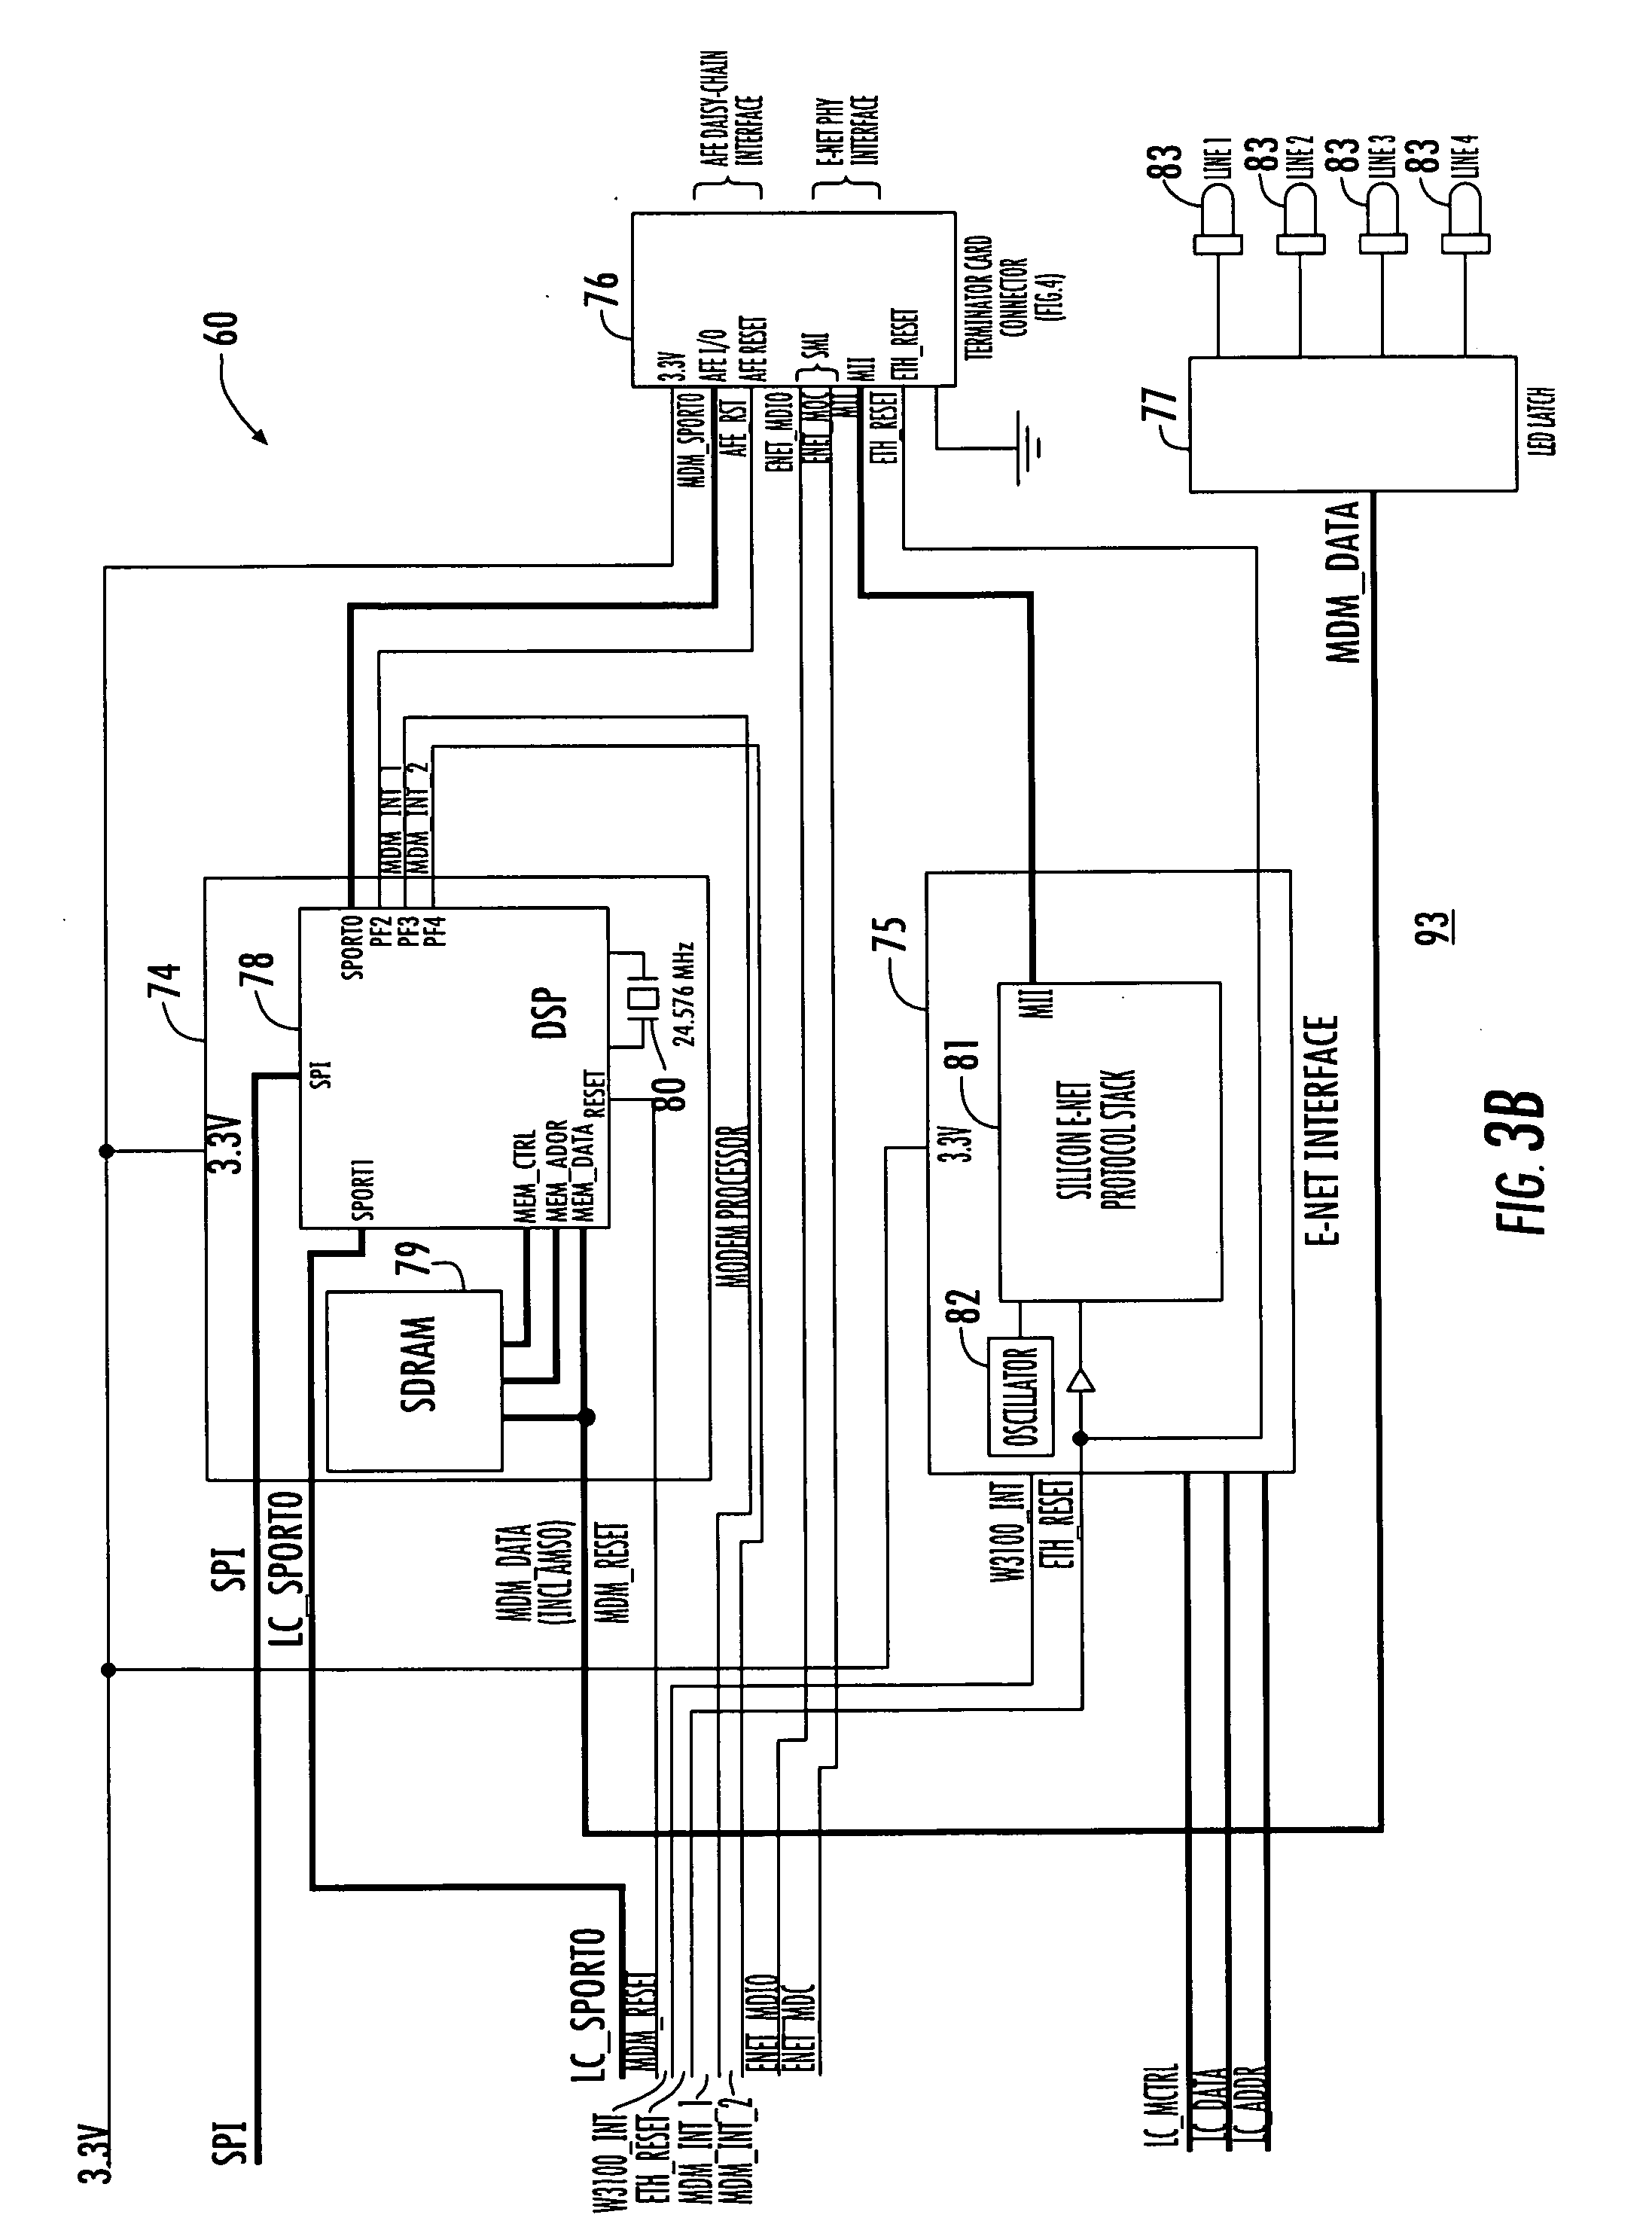 US20090058630A1 20090305 D00005 patent us20090058630 system and method for monitoring security sonitrol alarm wiring diagram at nearapp.co